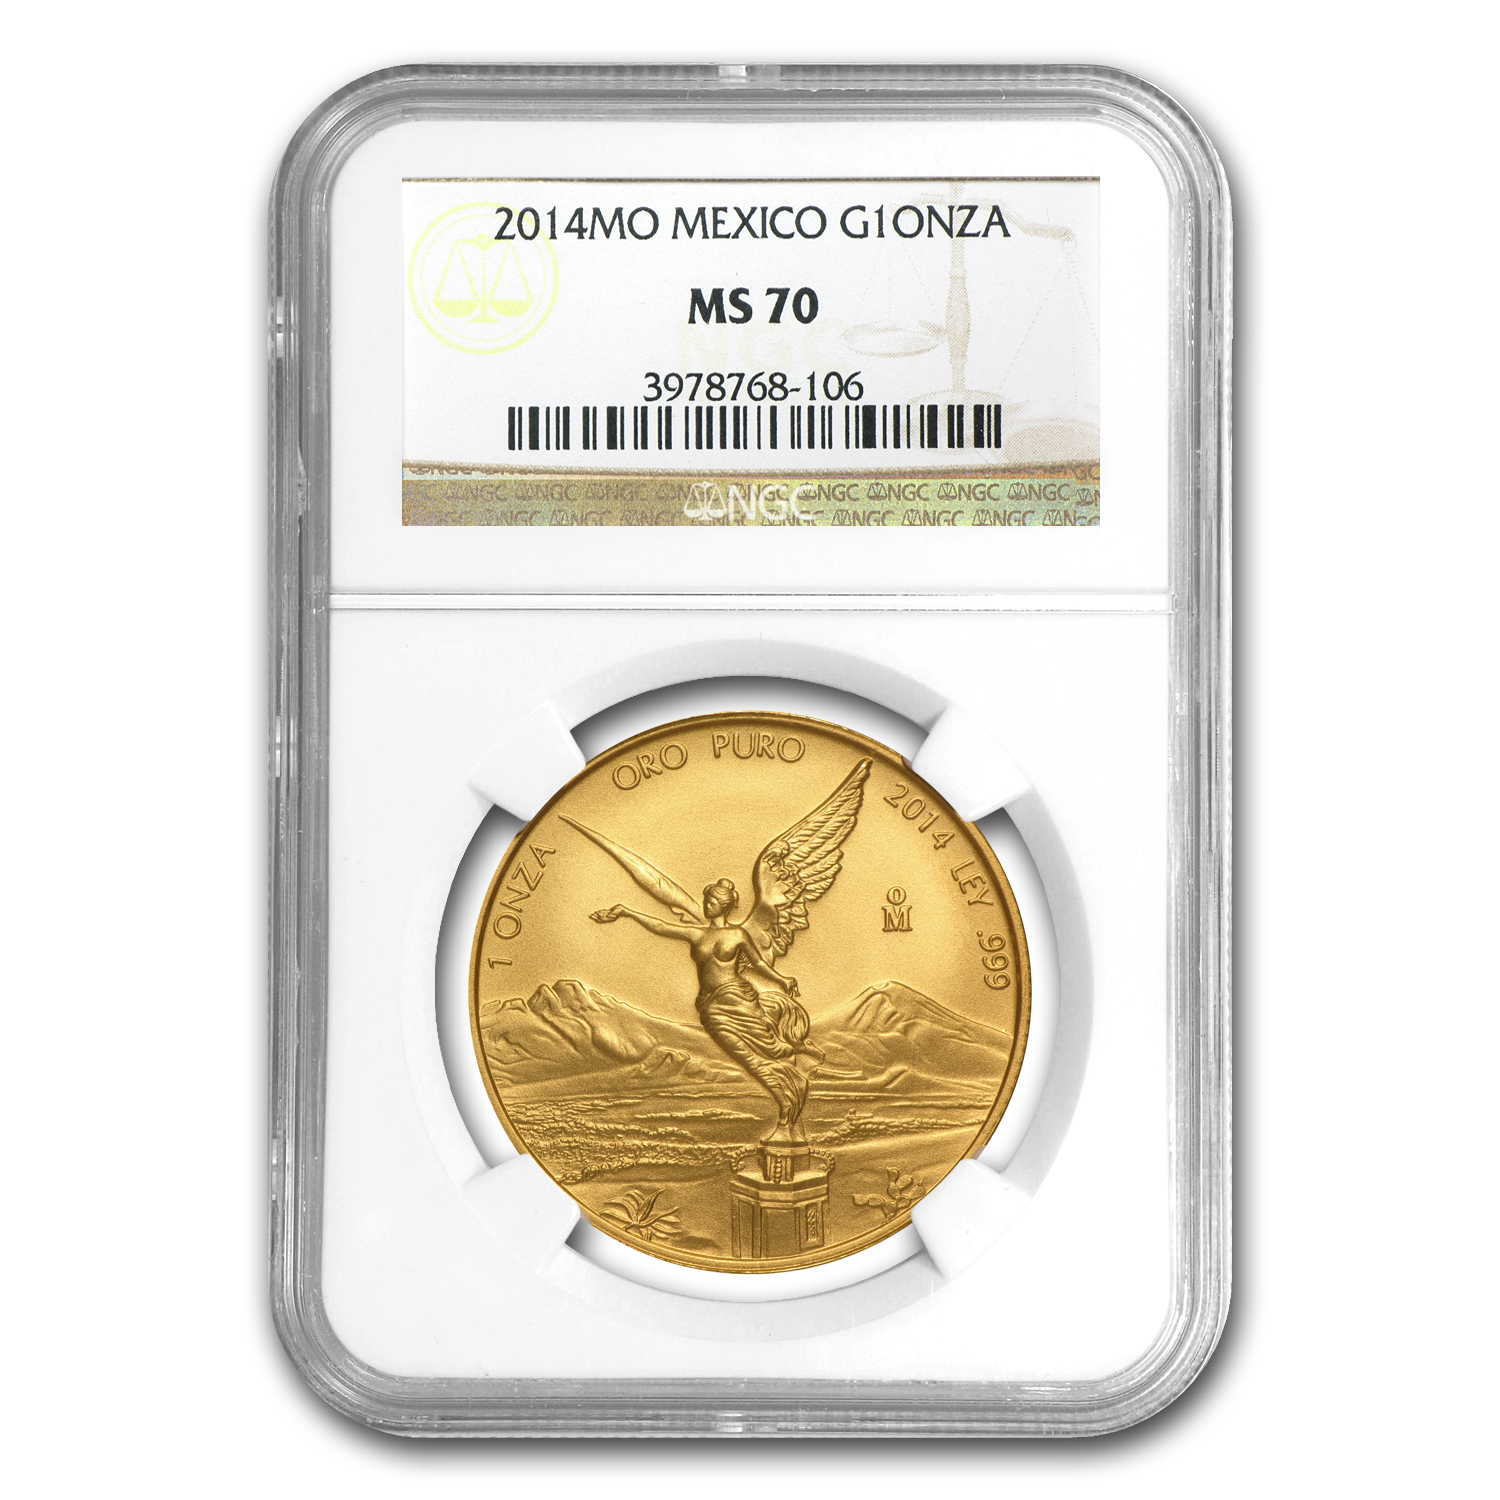 2014 Mexico 1 oz Gold Libertad MS-70 NGC